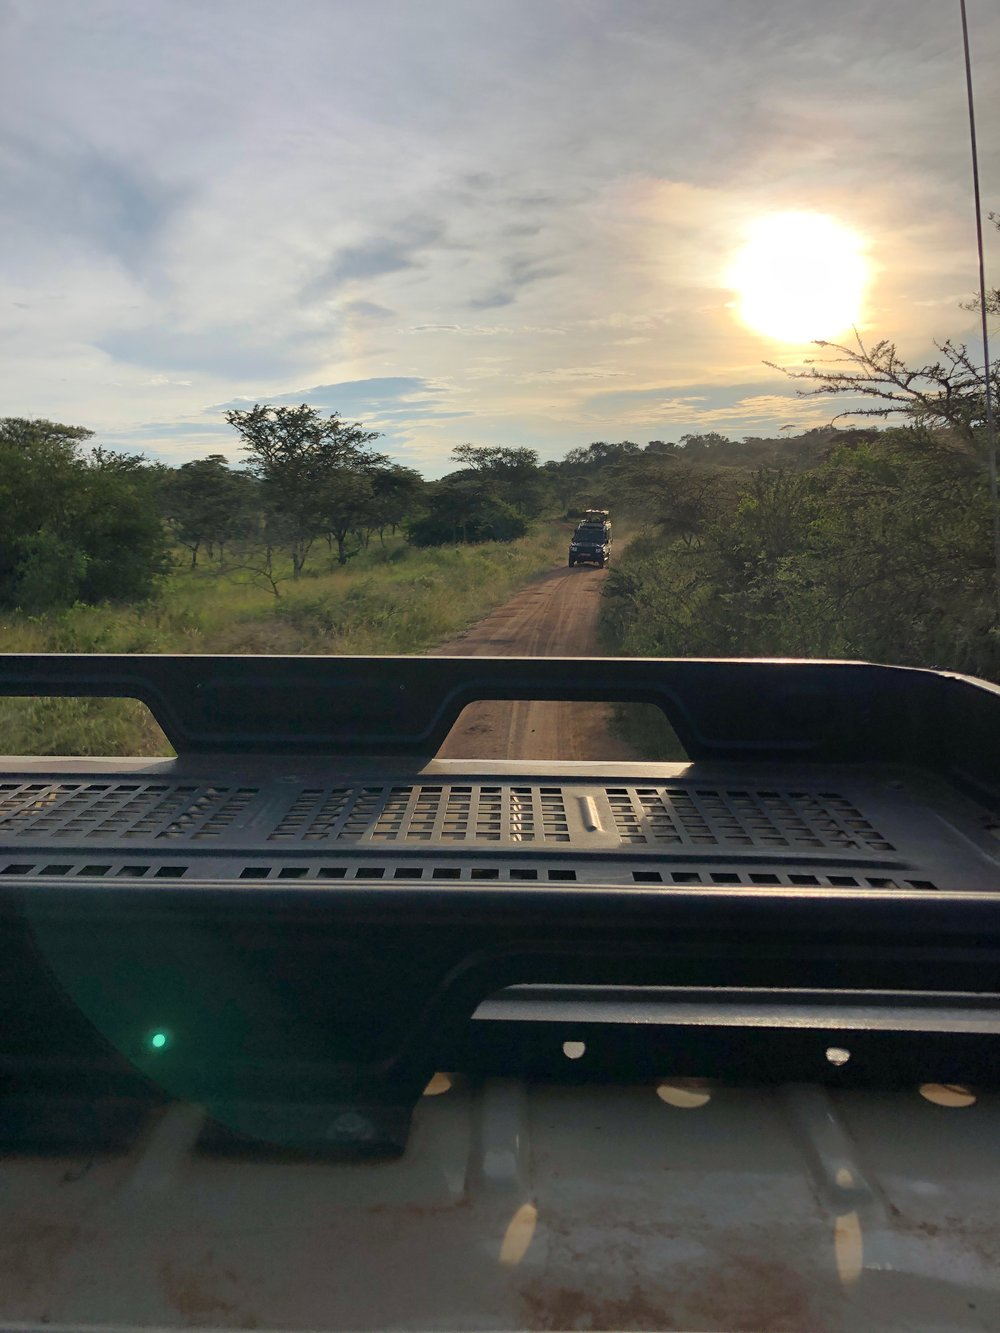 The view from my safari vehicle with another not far behind.